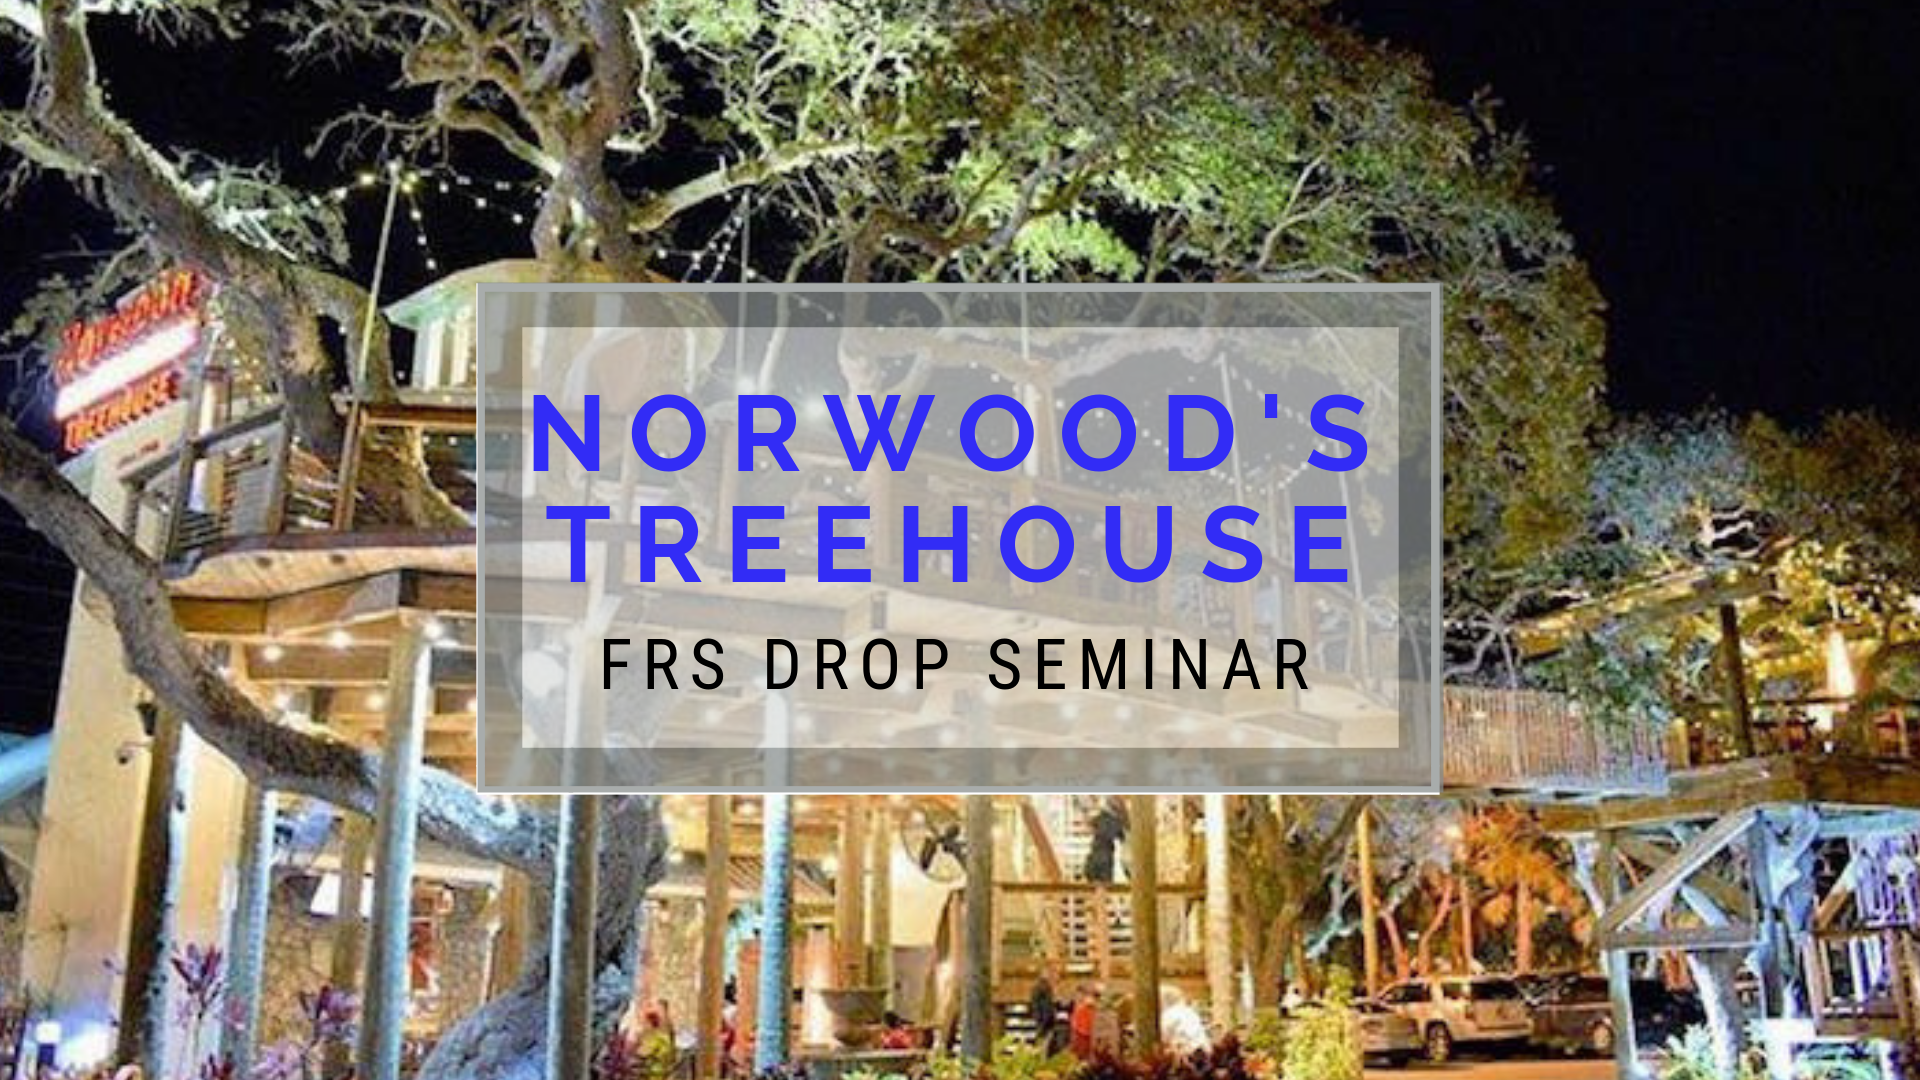 Join us for an FRS DROP Rollover Seminar at Norwood's Treehouse. Anders & Anders Financial Group